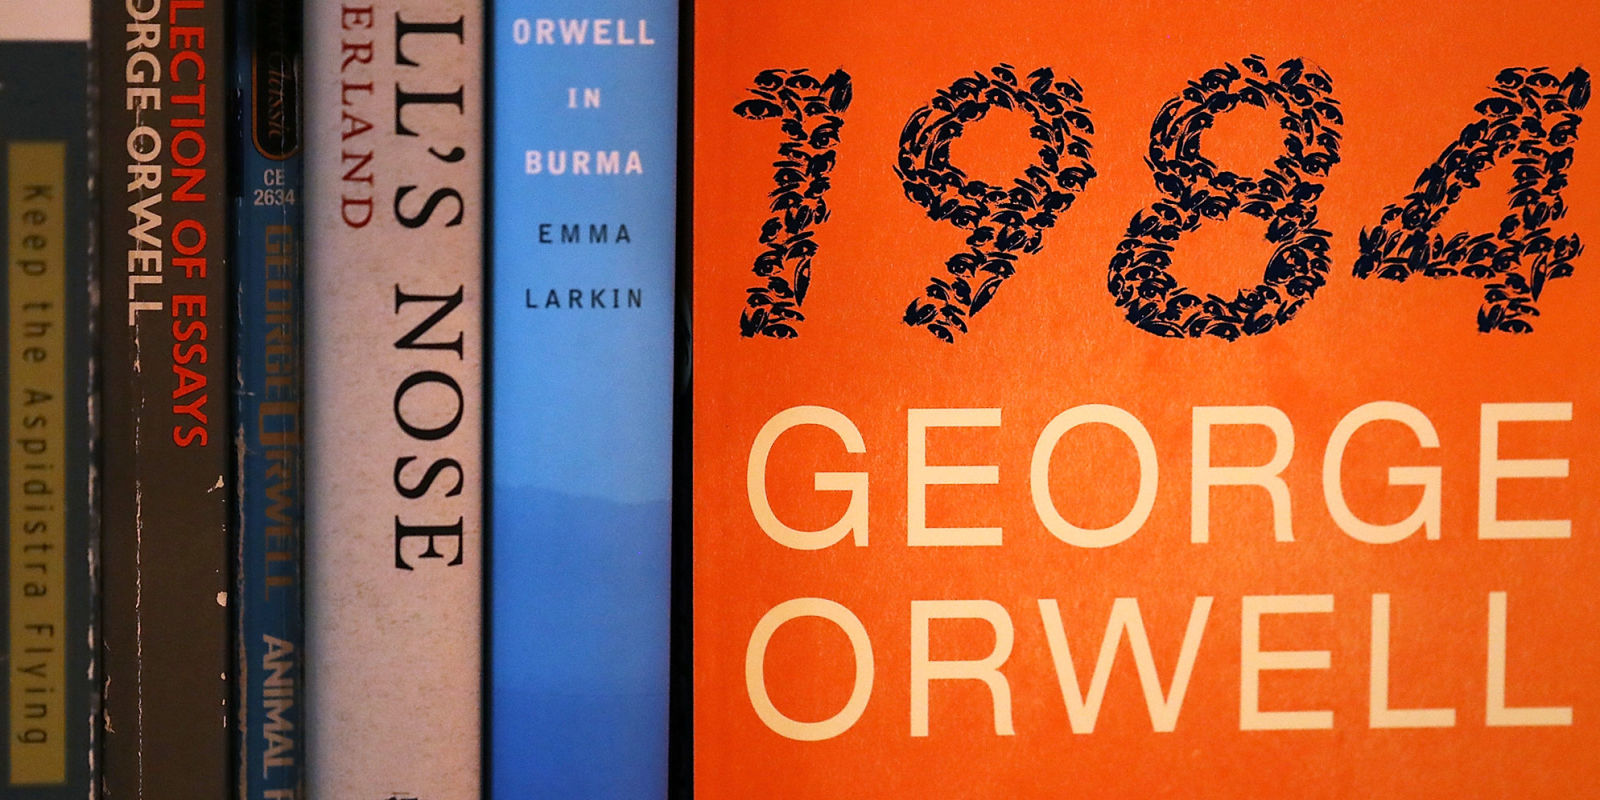 essays essays order essay by george orwell s increase in tops  by george orwell s increase in tops amazon 1984 by george orwell s increase in 2017 essay on